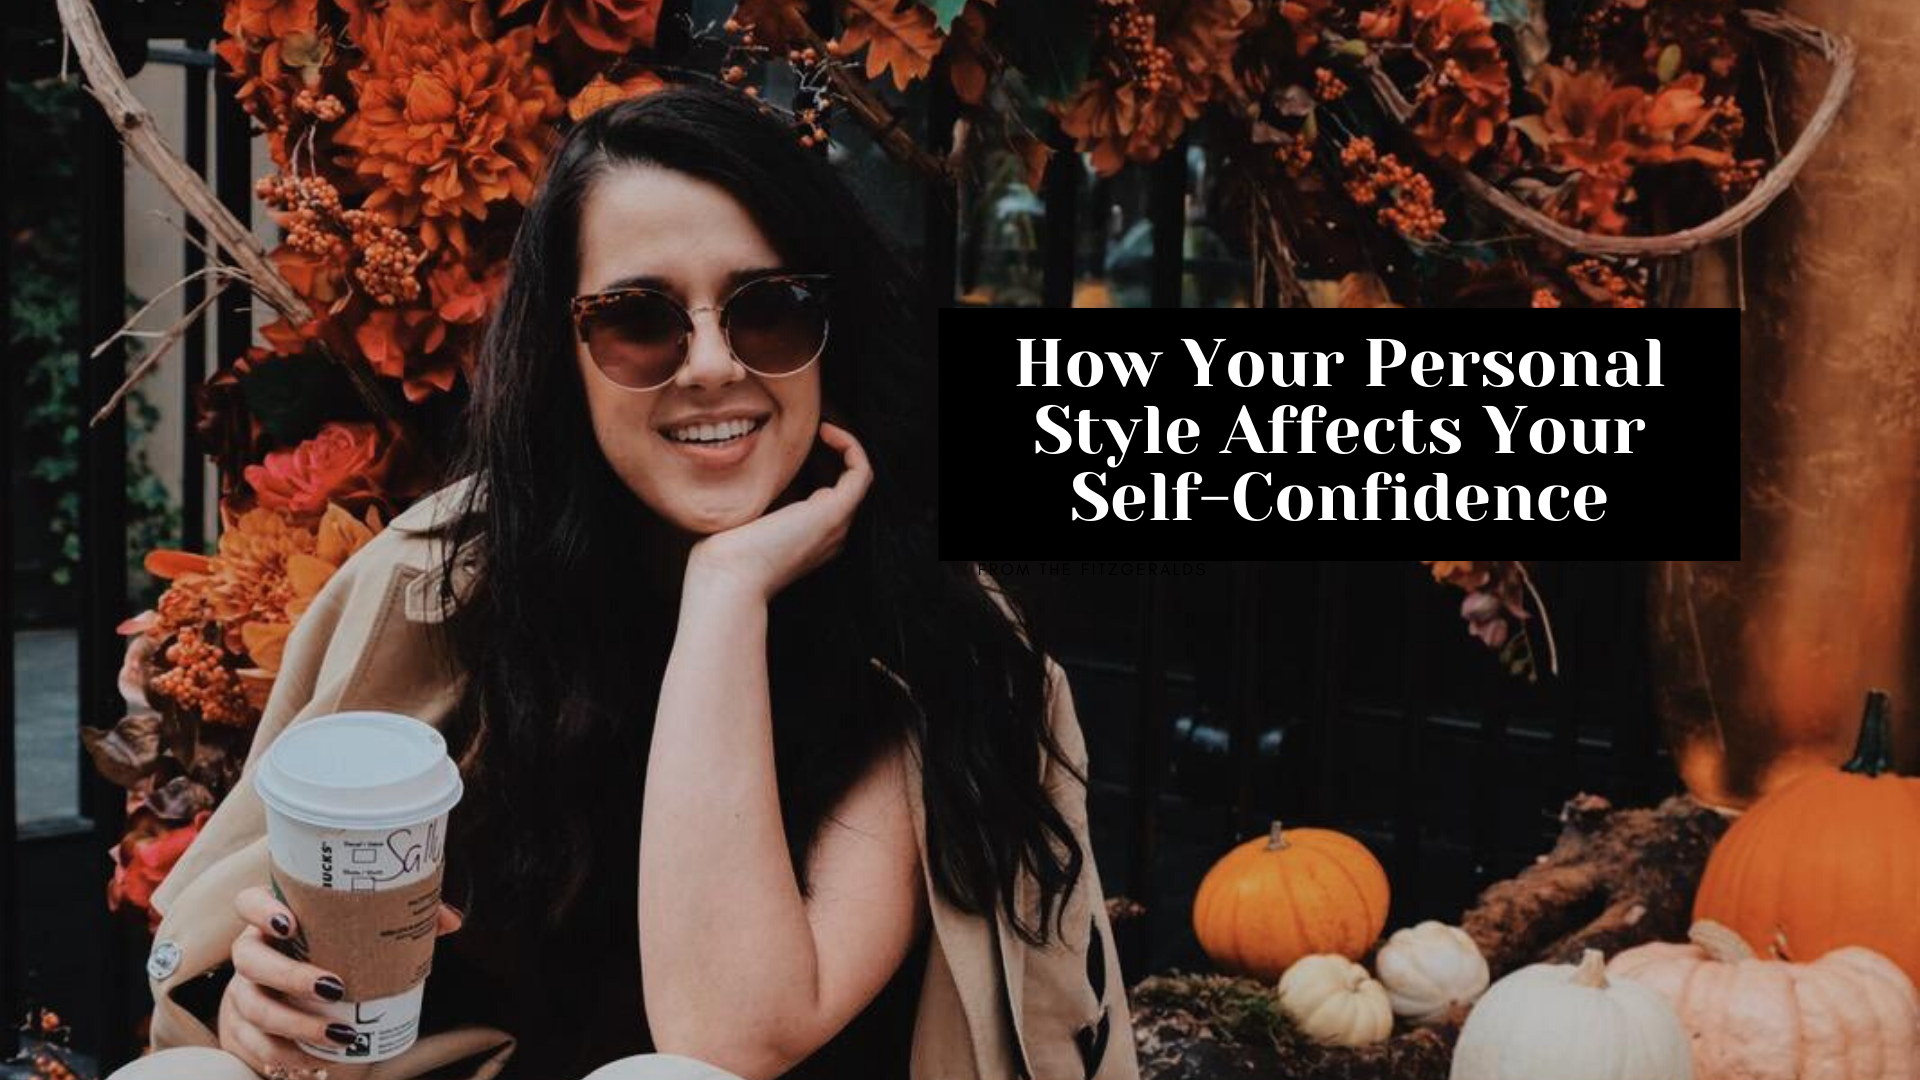 How your personal style affects self-confidence